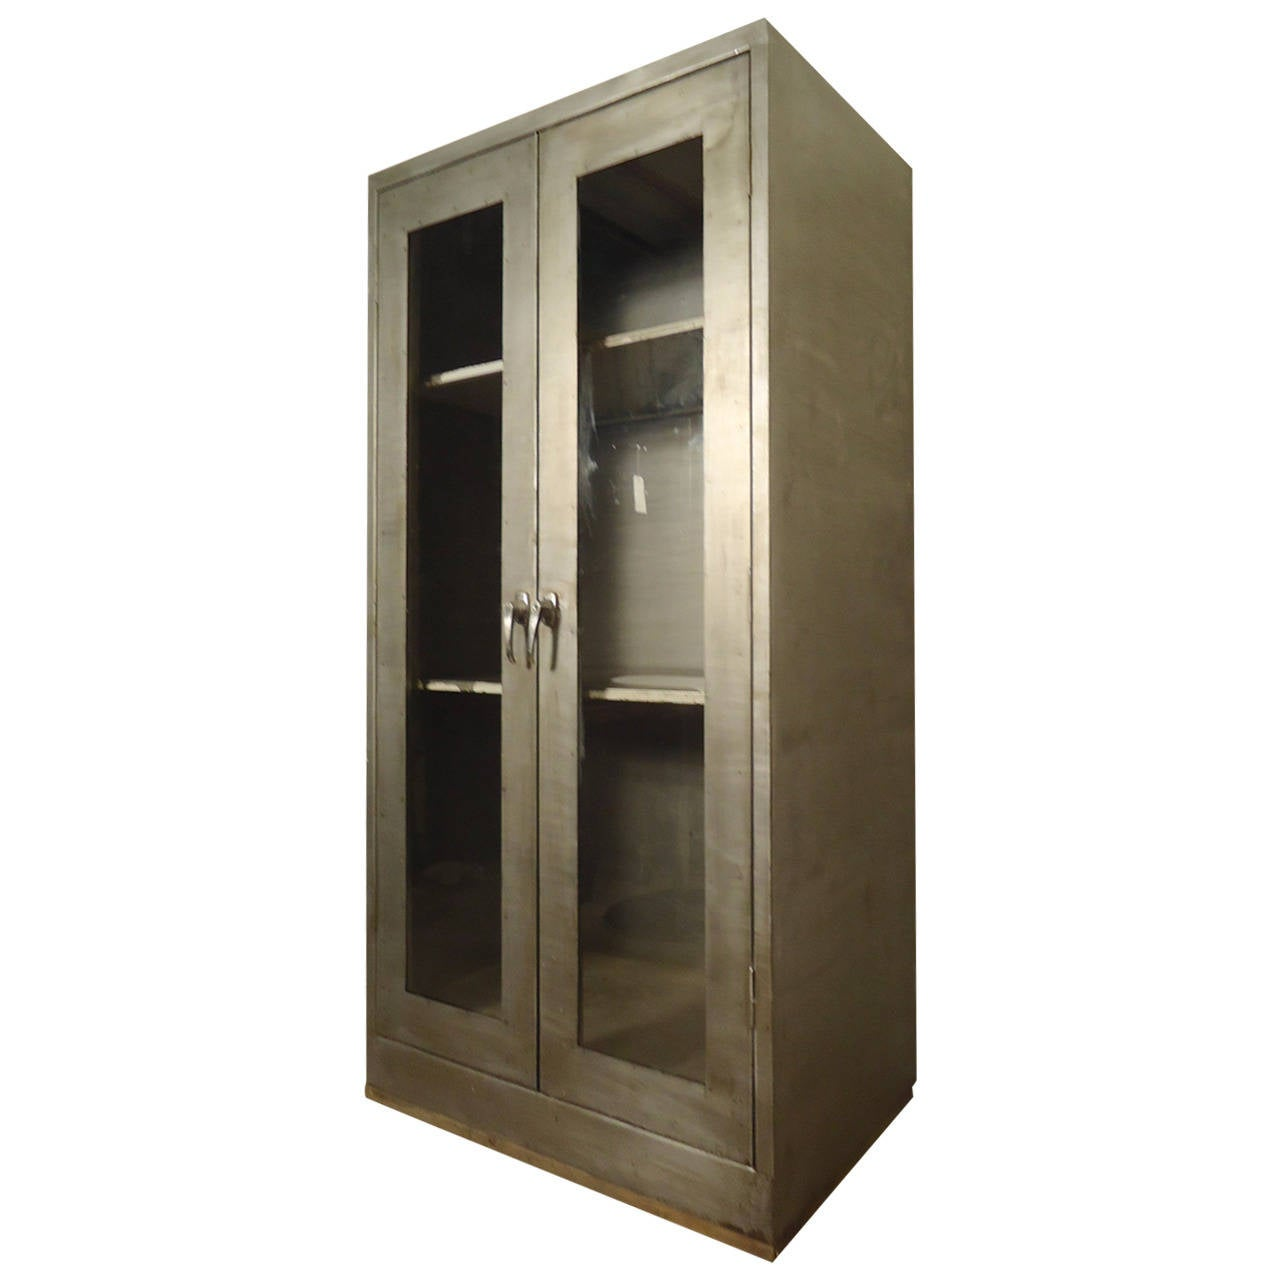 Large industrial double door cabinet for sale at 1stdibs for 1 door cabinet